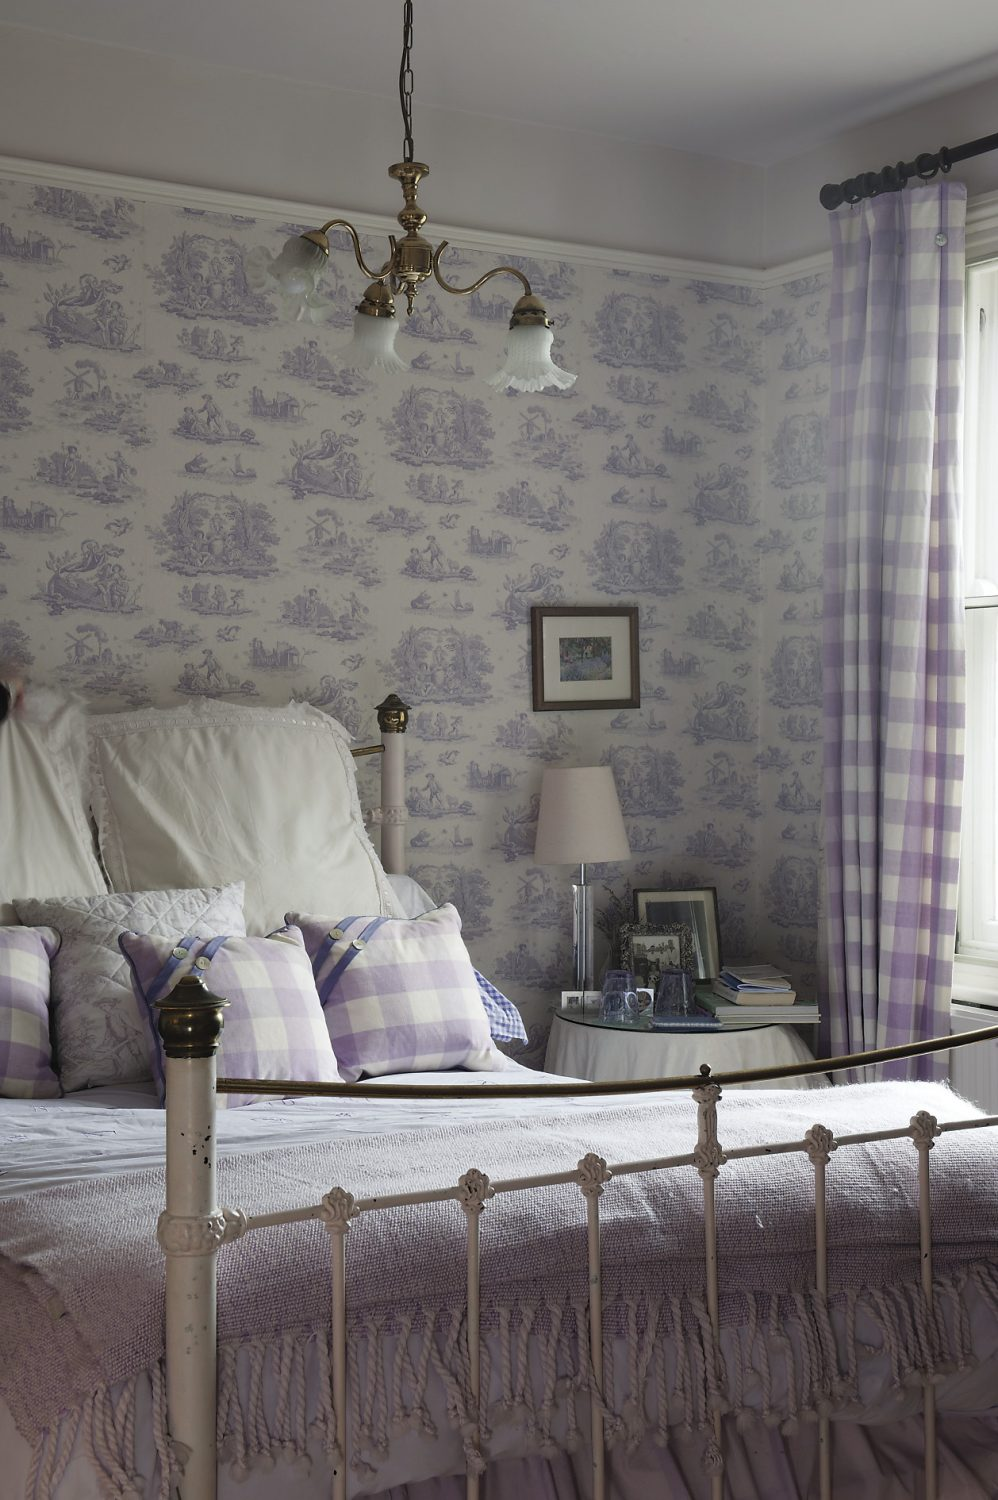 The guest room seems rather different in style to the rest of the house, but it is known as Ann's mother's room, so the lilac toile wallpaper and white embroidered bedlinen makes a fittingly relaxing environment